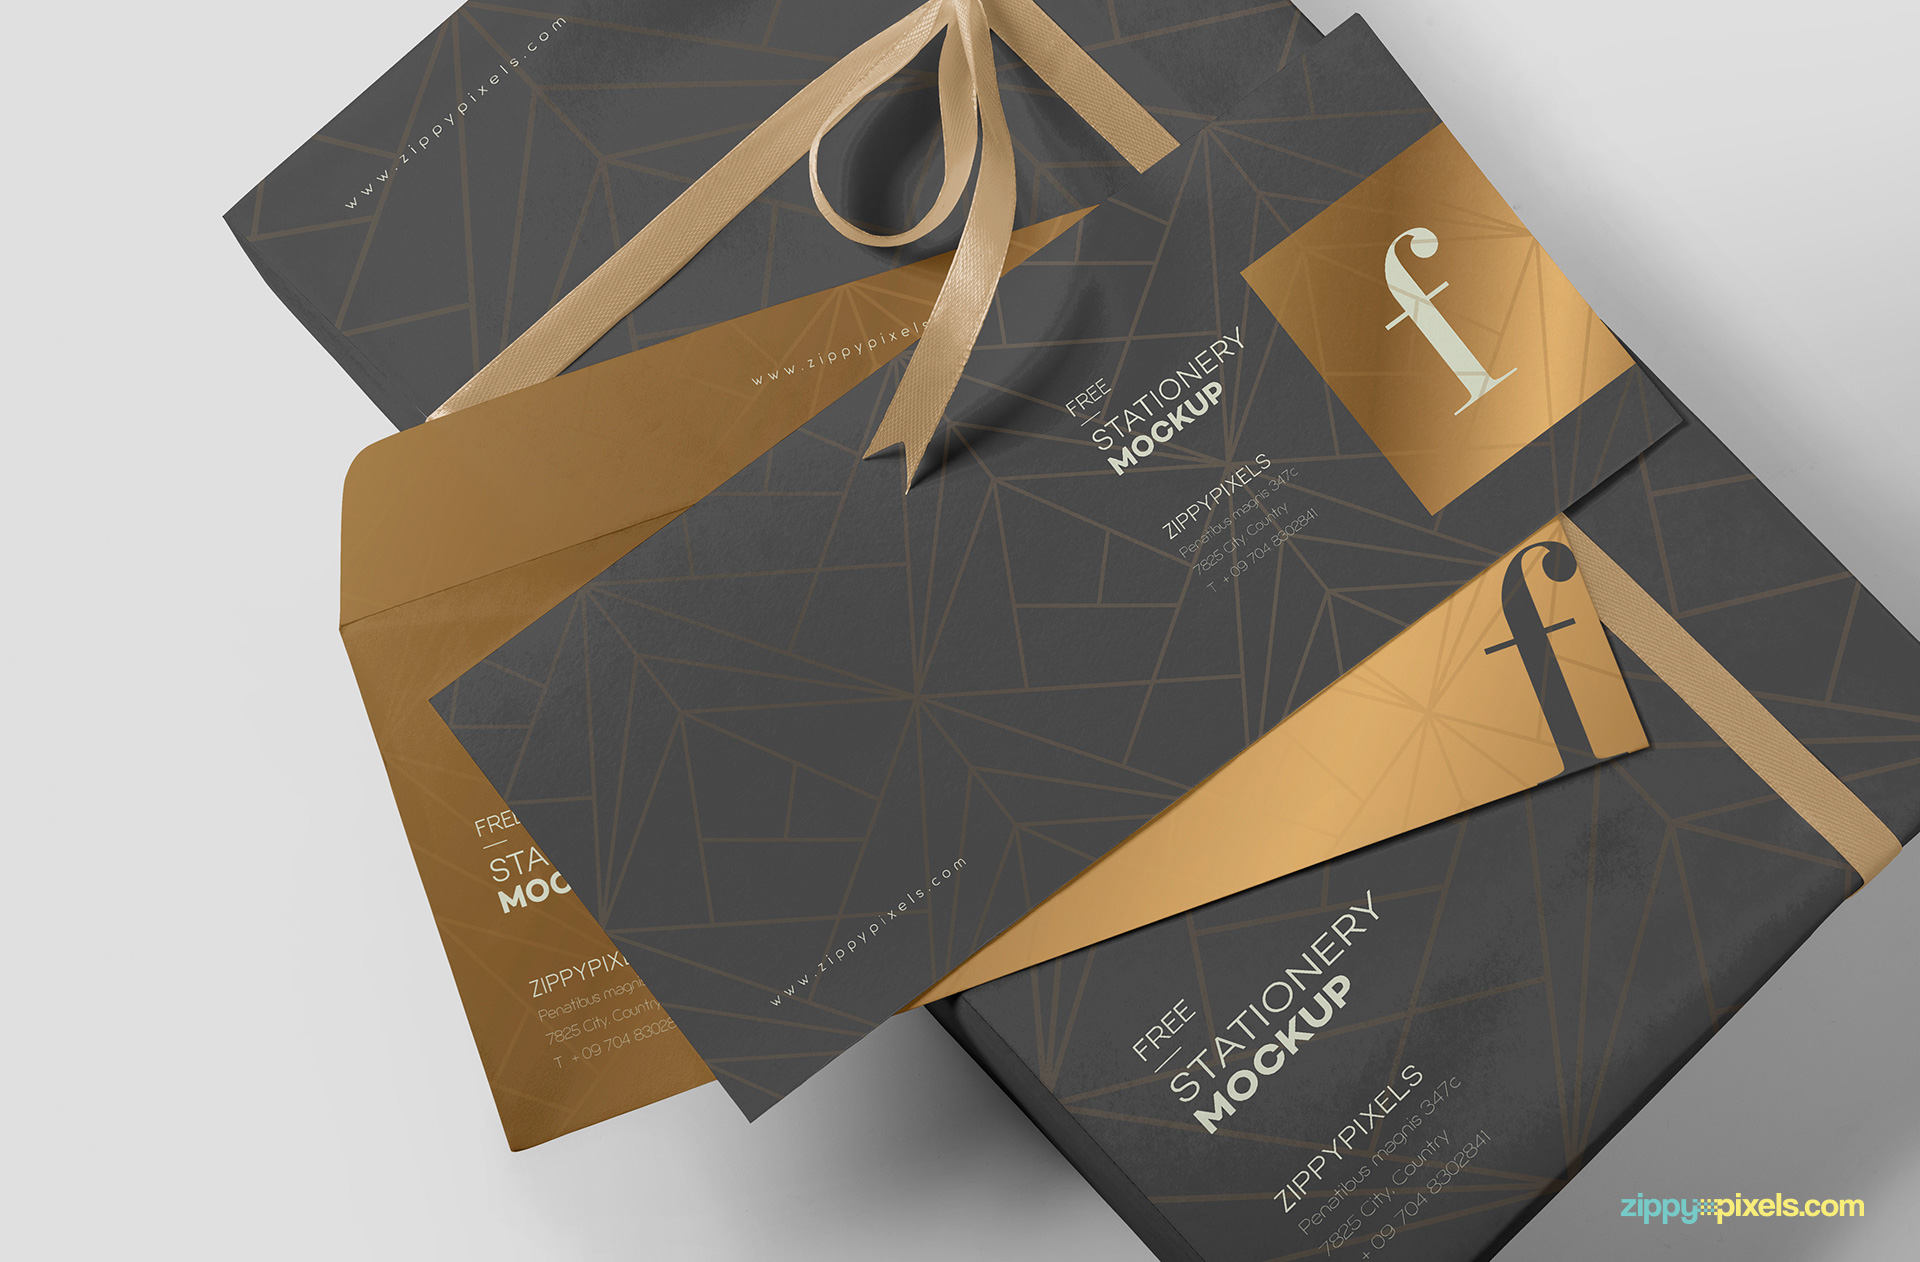 Realistic effects of the envelope mockup PSD.